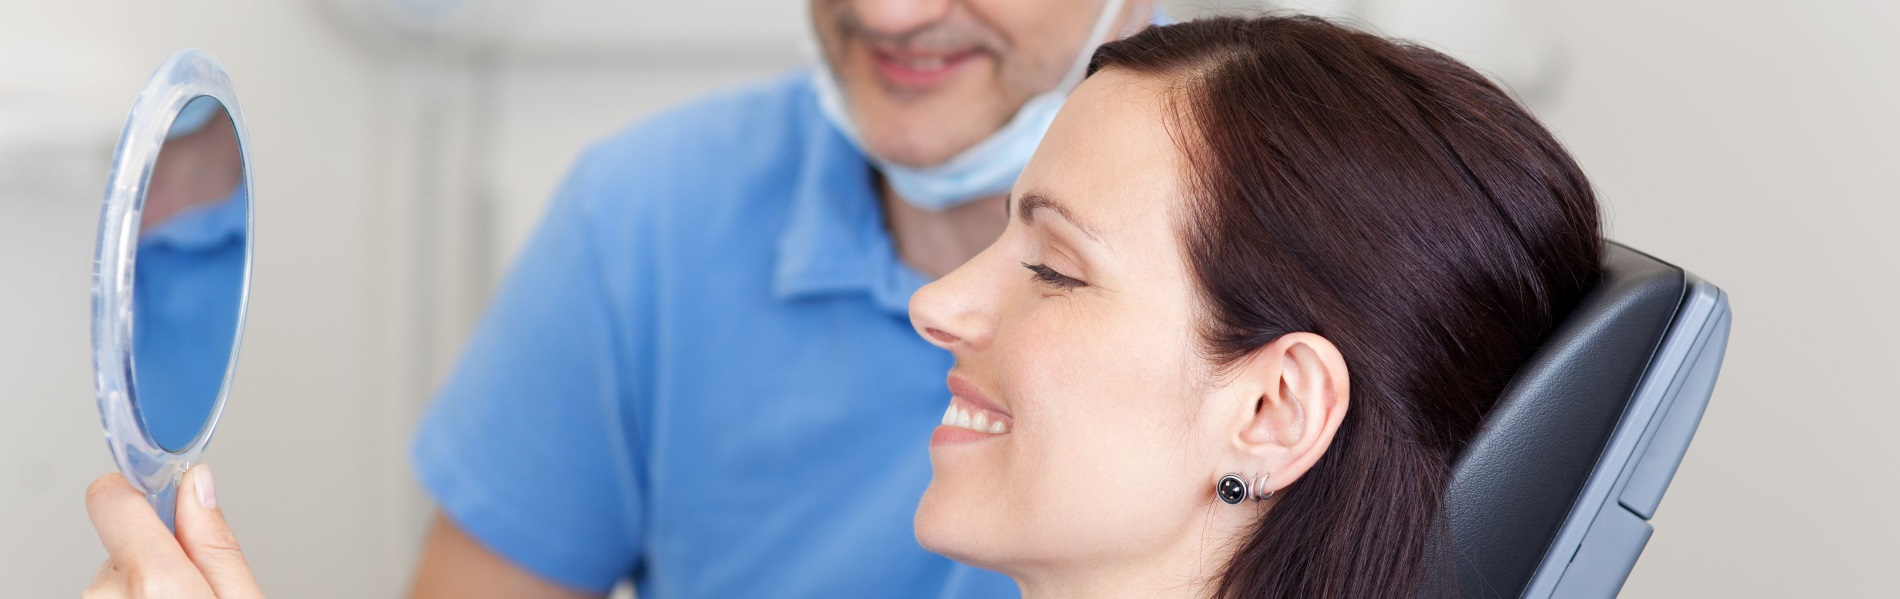 An image of a smiling woman looking in a mirror portrays the concept of restorative dentistry at Discovery Smiles Dentistry.